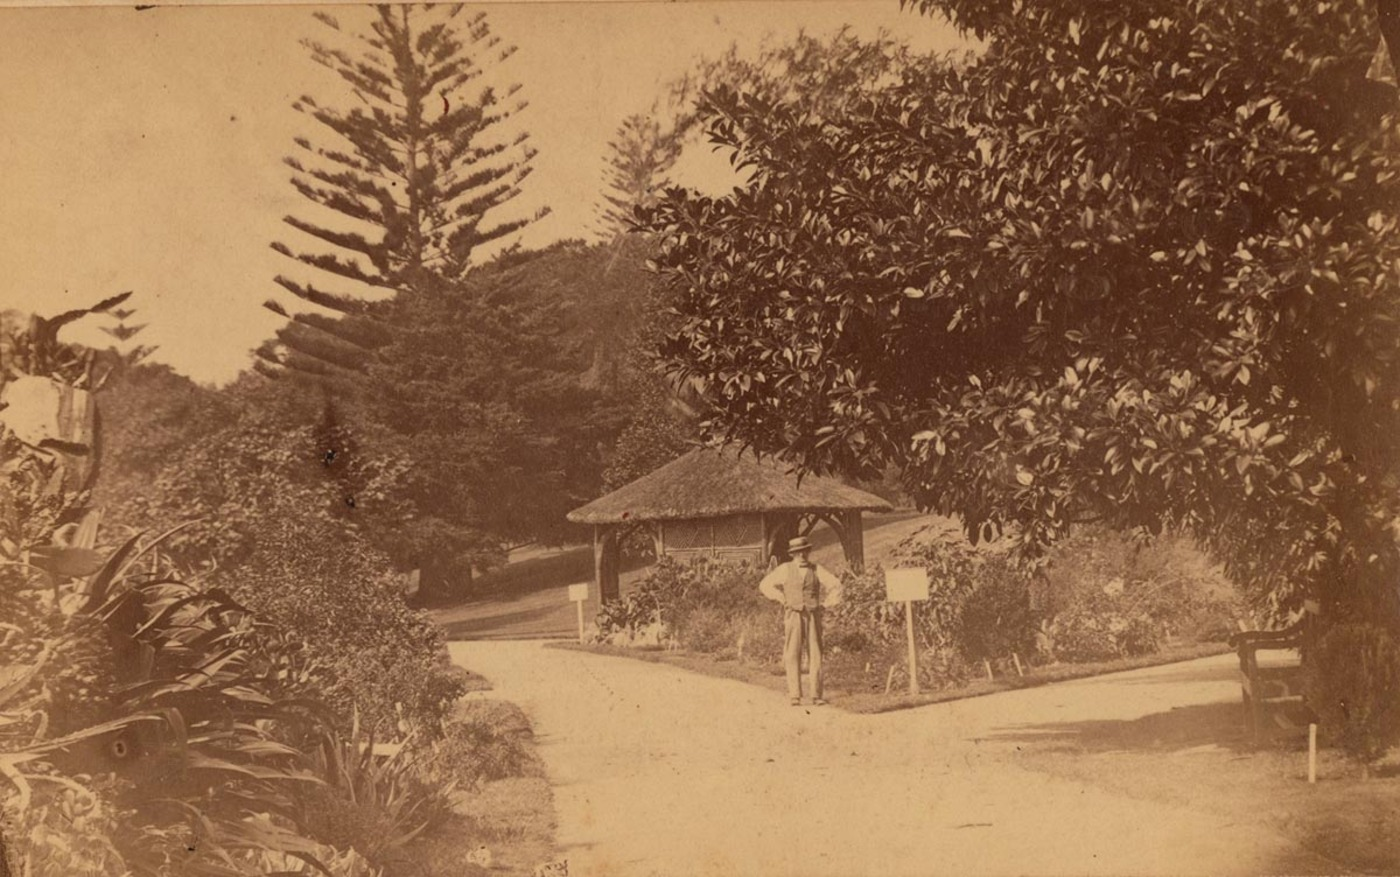 In the Botanic Gardens, 1864-1866, by J.R. Clarke